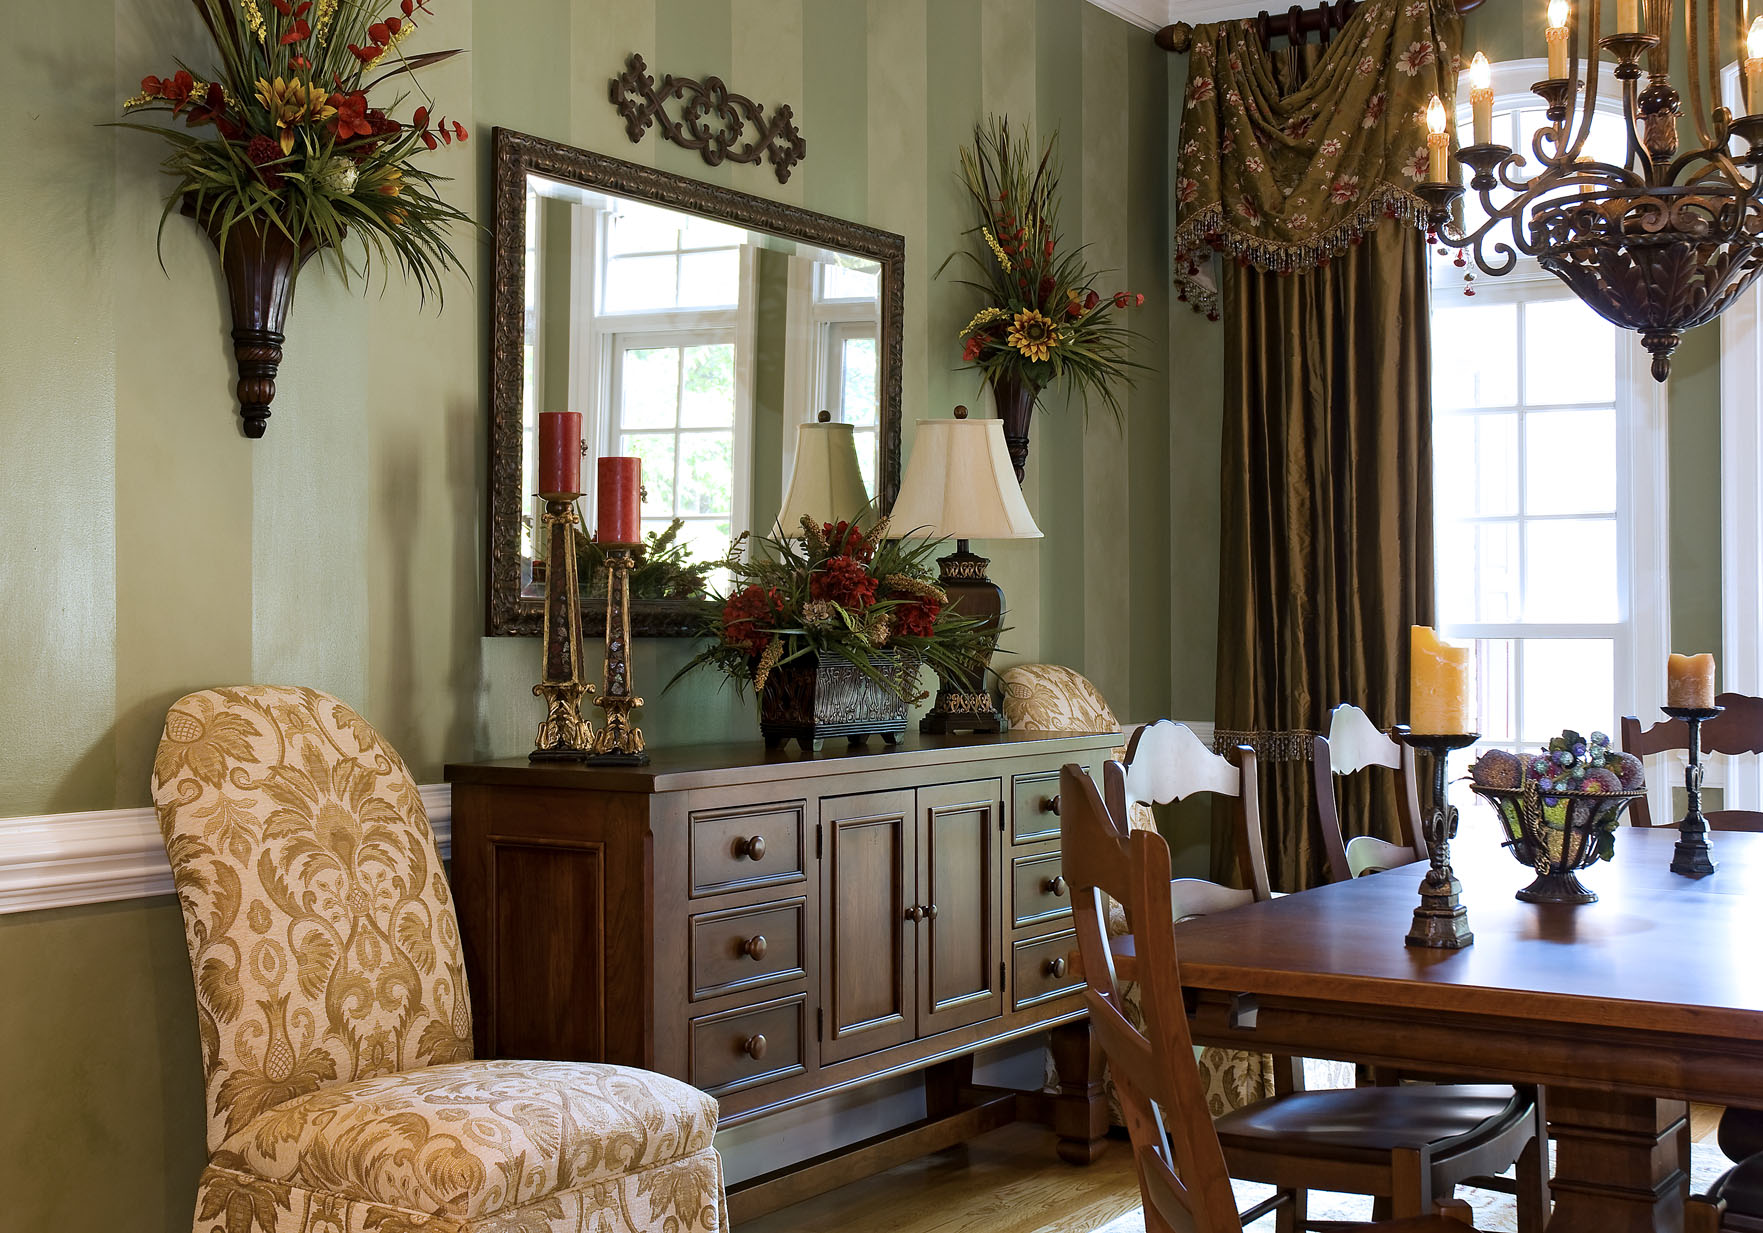 Create Some Holiday Decorating Magic!